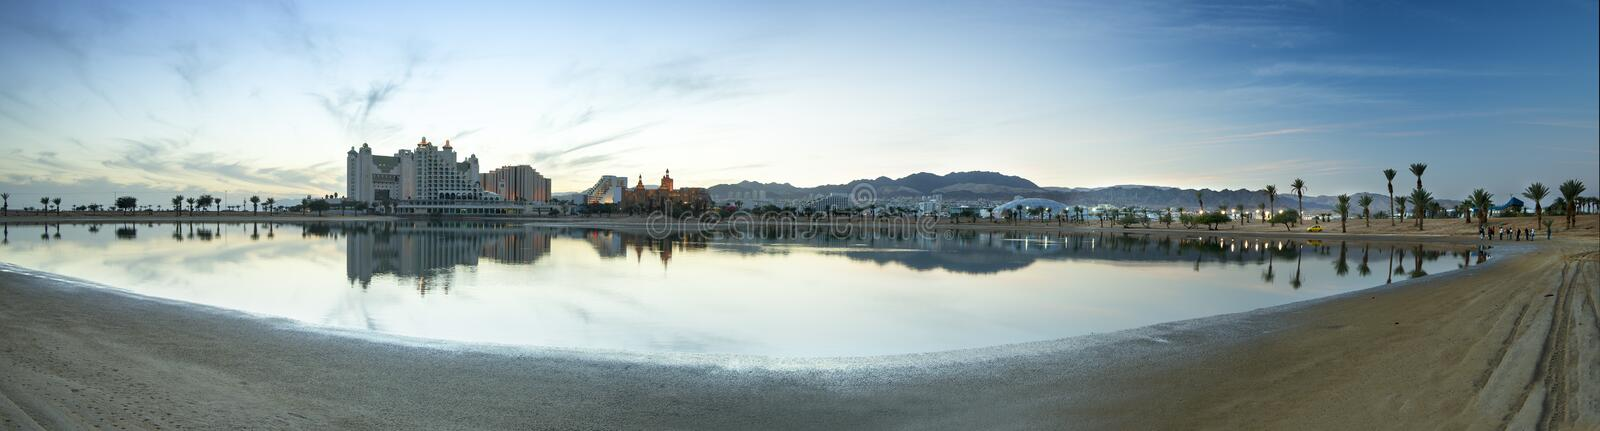 Panoramic view on resort hotels of Eilat, Israel stock photos